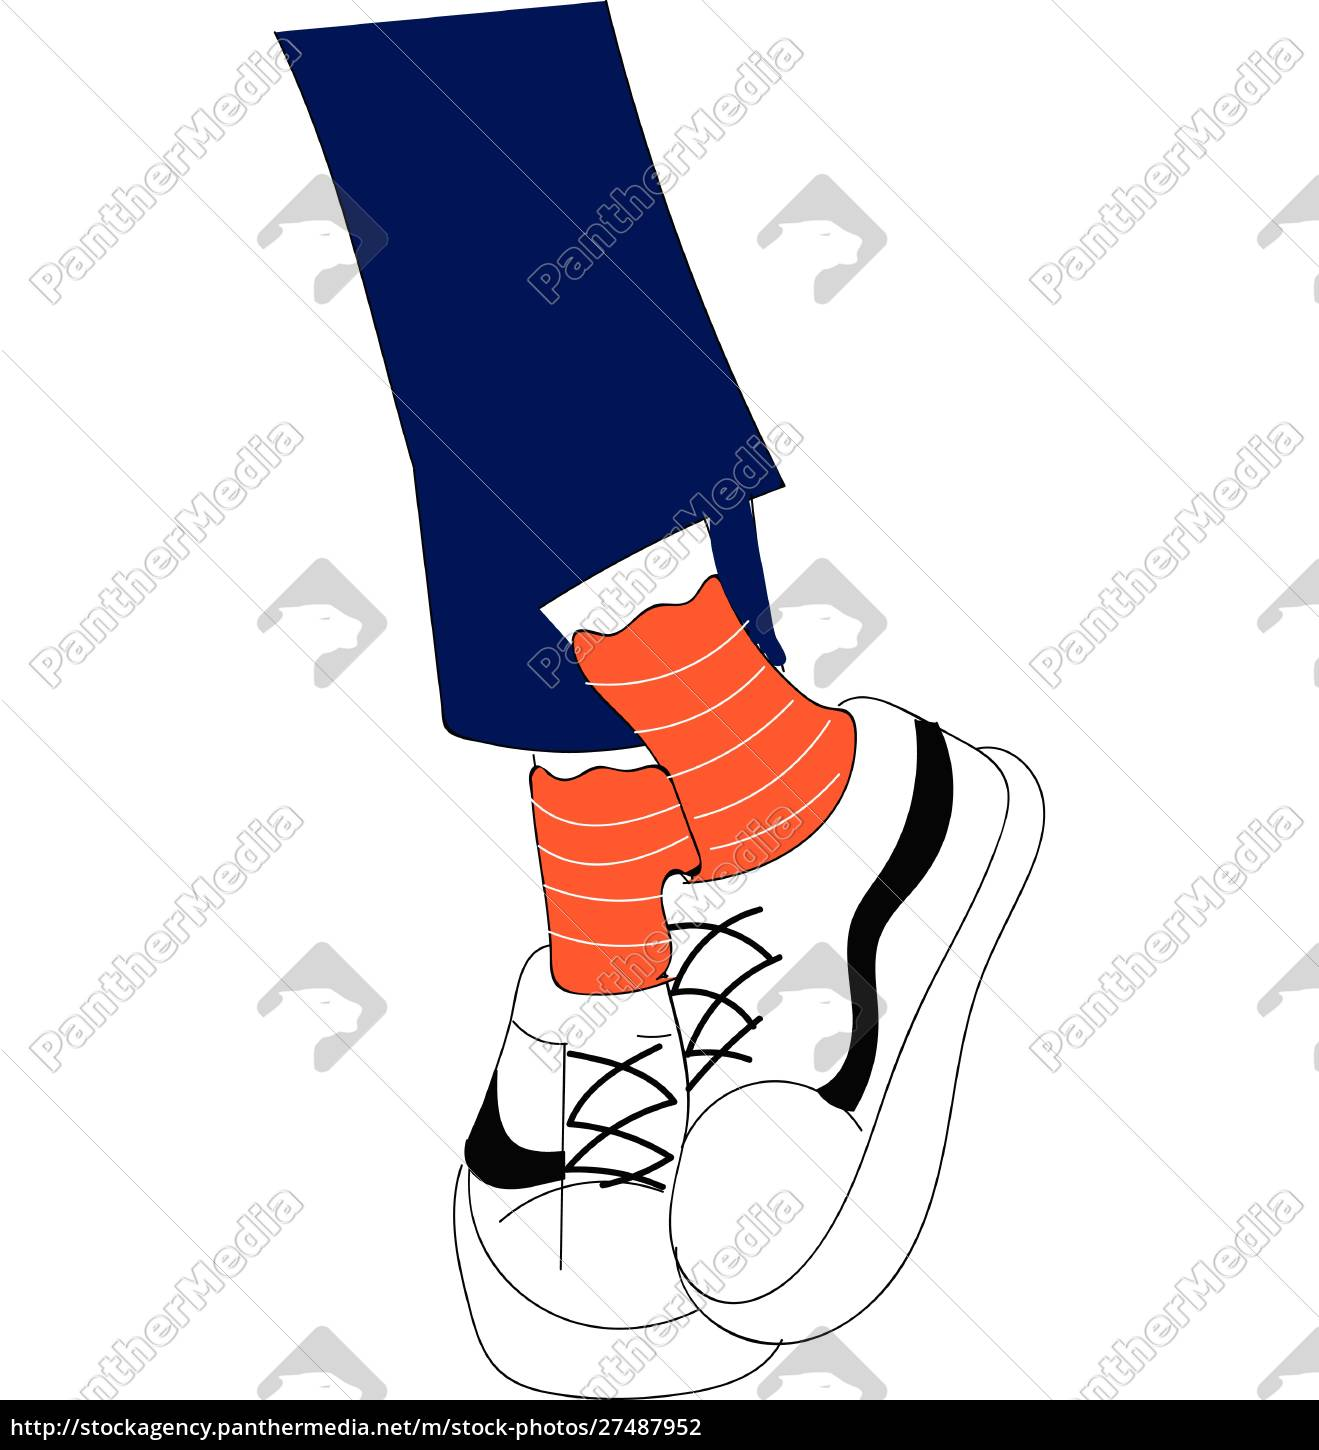 beine, in, blauen, jeans, orange, socken - 27487952